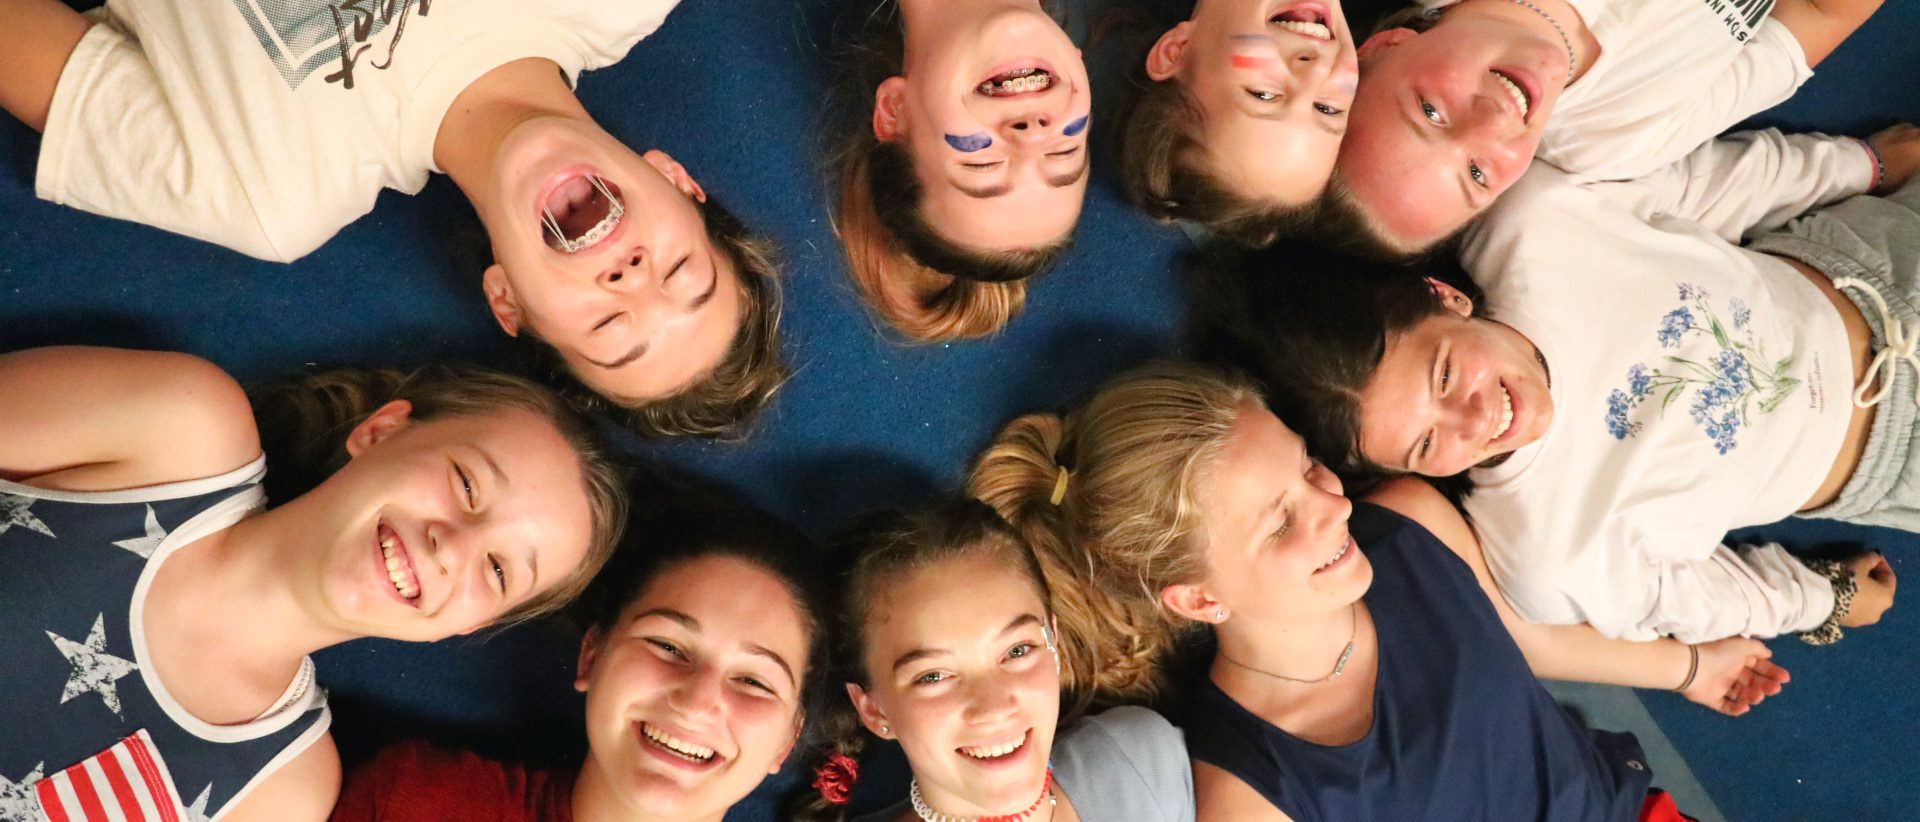 camps girls lying down in circle